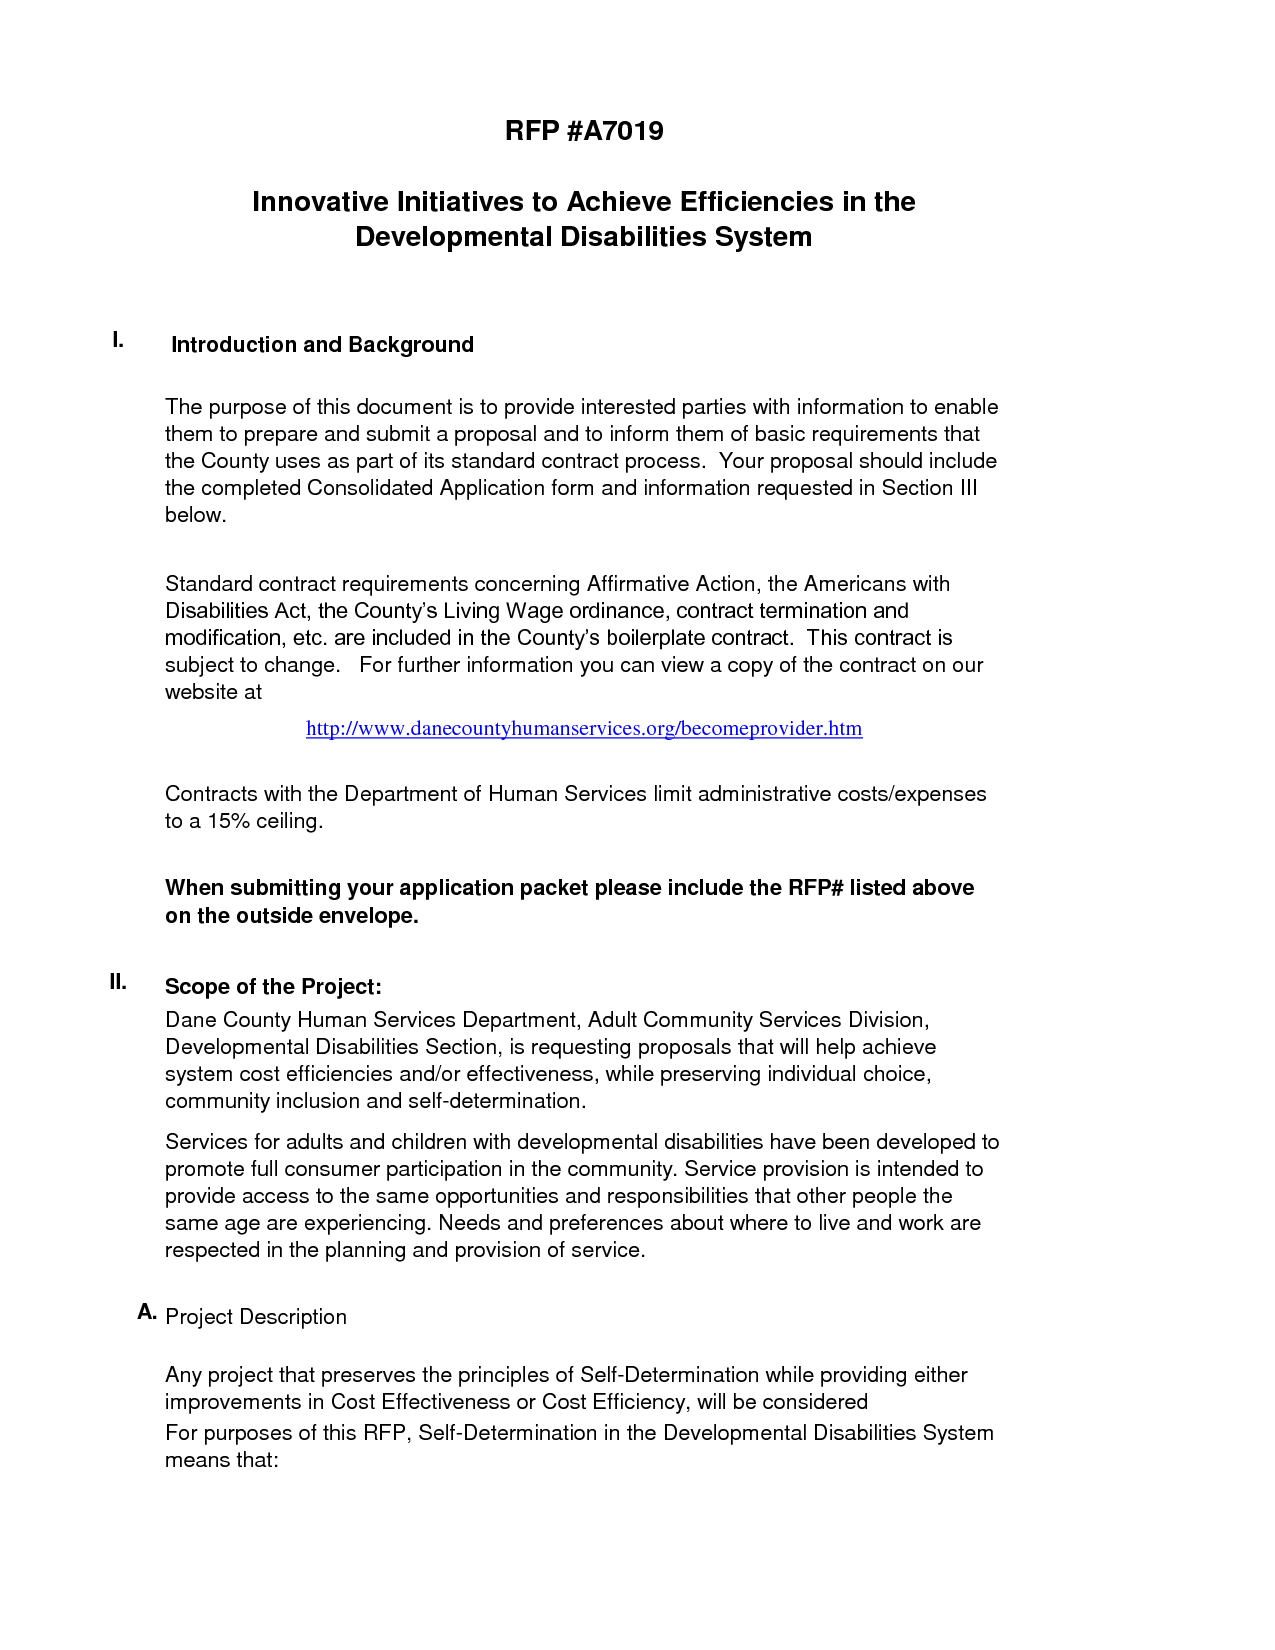 Contract Termination Letter For Services By Obs22303 - Contract Termination  Letter